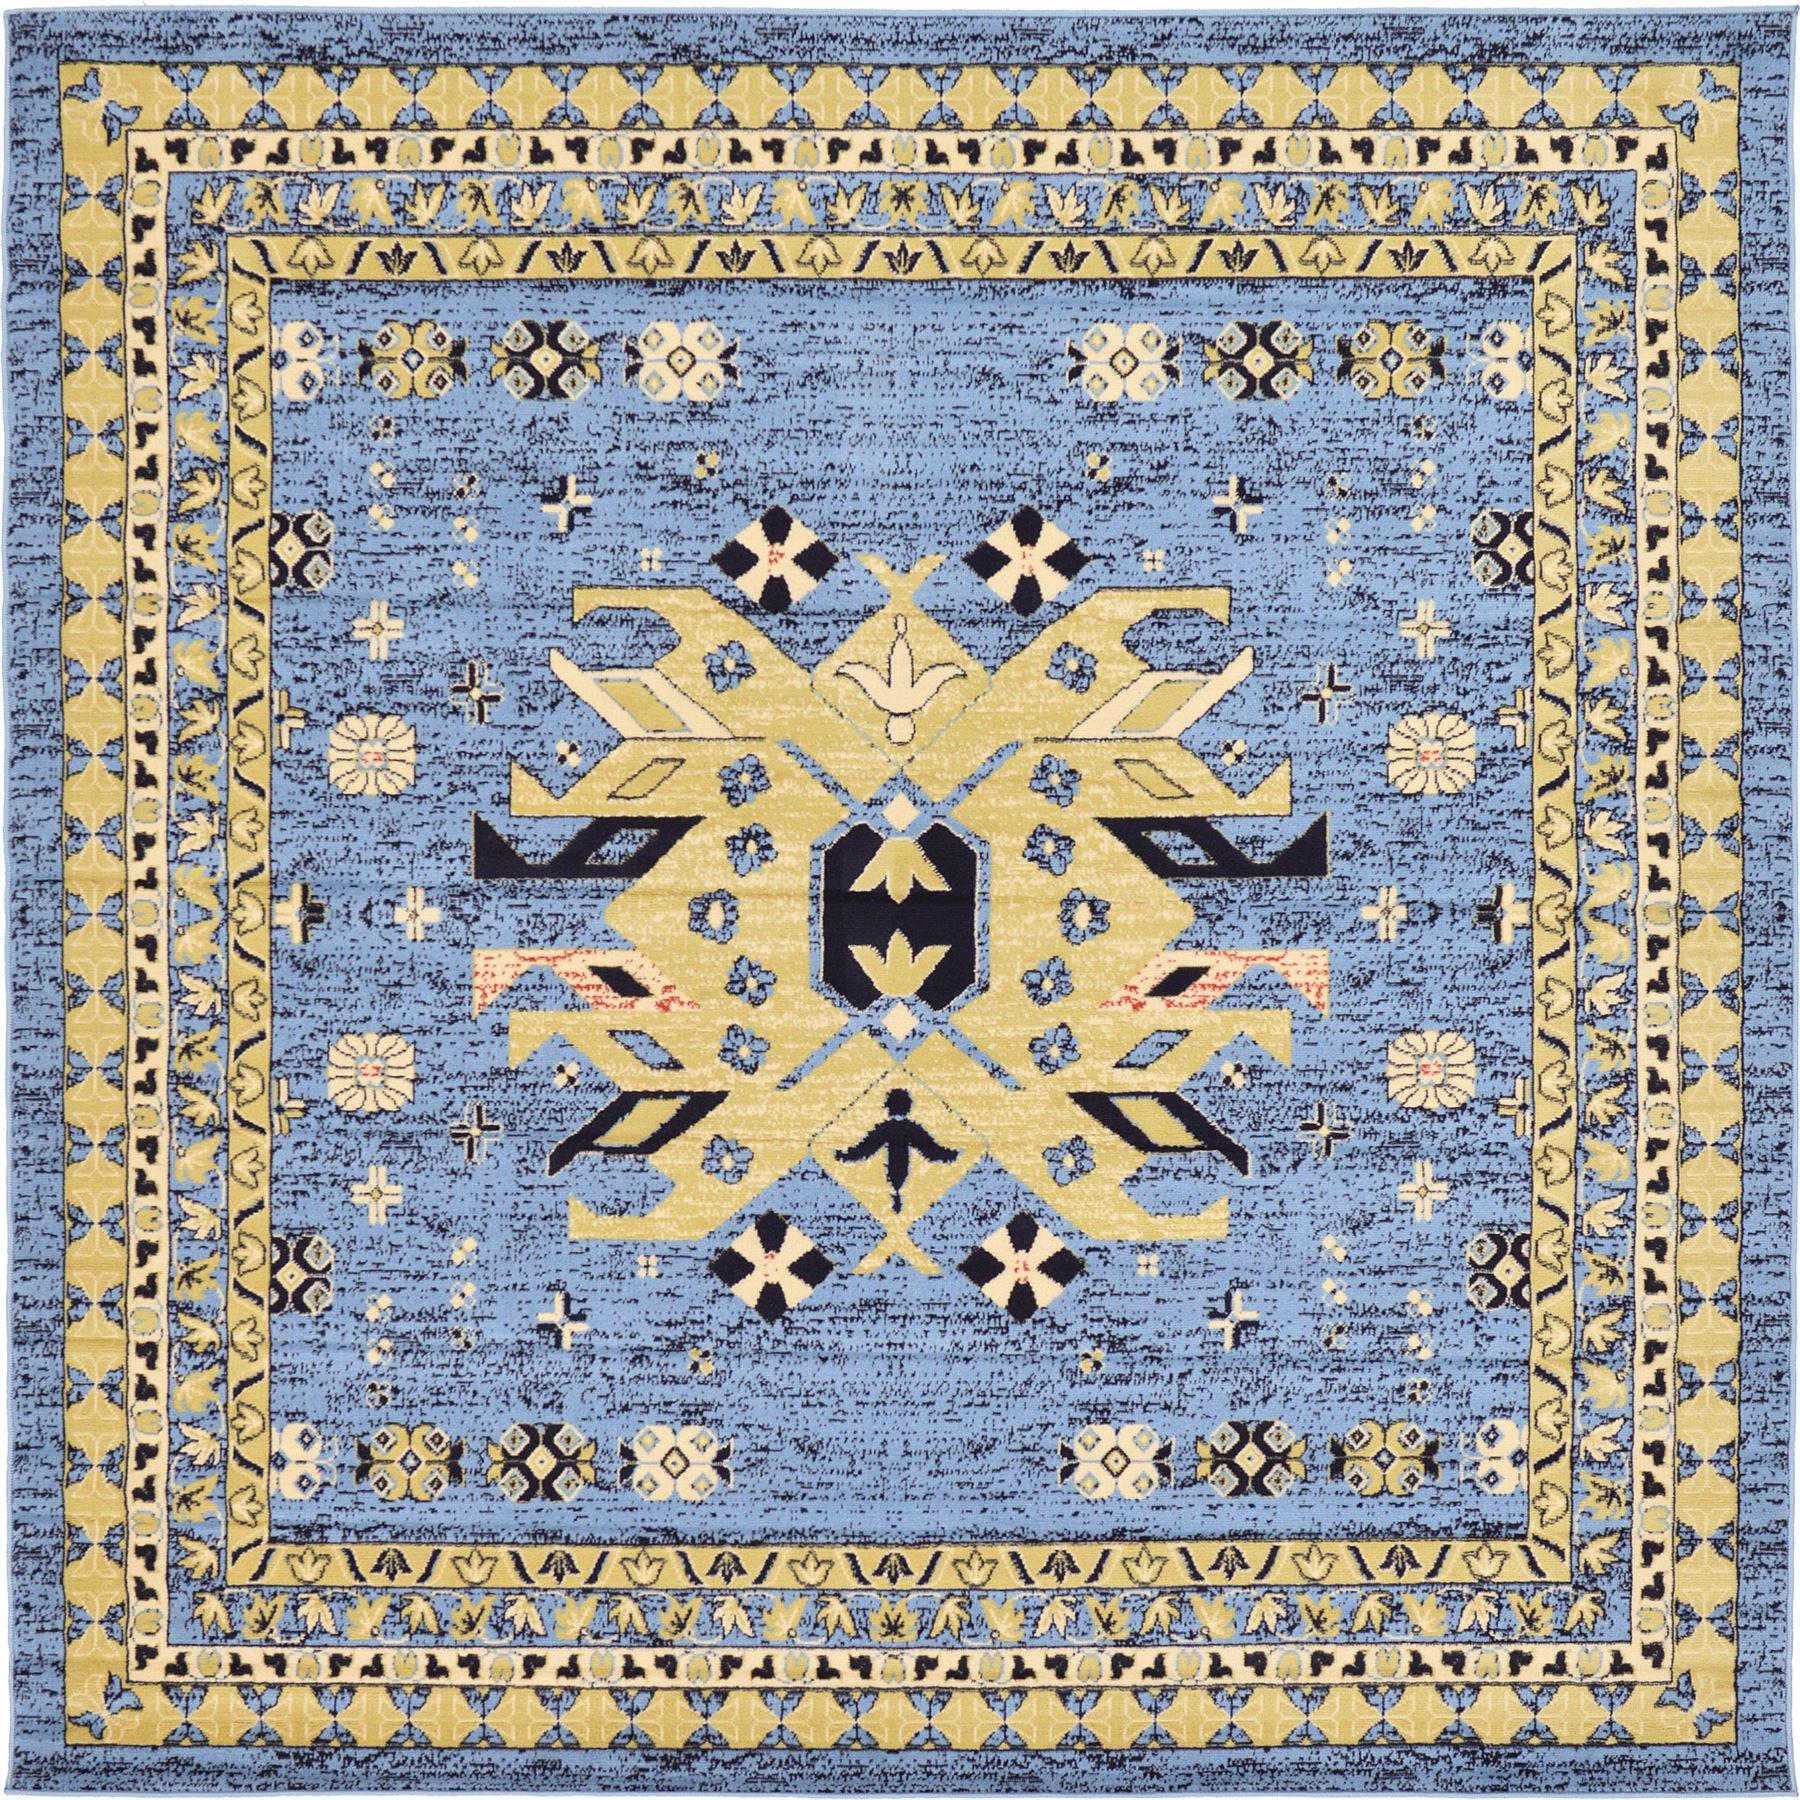 291788766101 further 52230763 moreover Large 8x11 Persian Style Rug Oriental Rugs Black Area Rug 8x10 Persian Carpet 8x11 Rugs Living Room Size Traditional Rugs 3189850 furthermore 116 also Large Kitchen Rugs. on oriental area rugs amazon